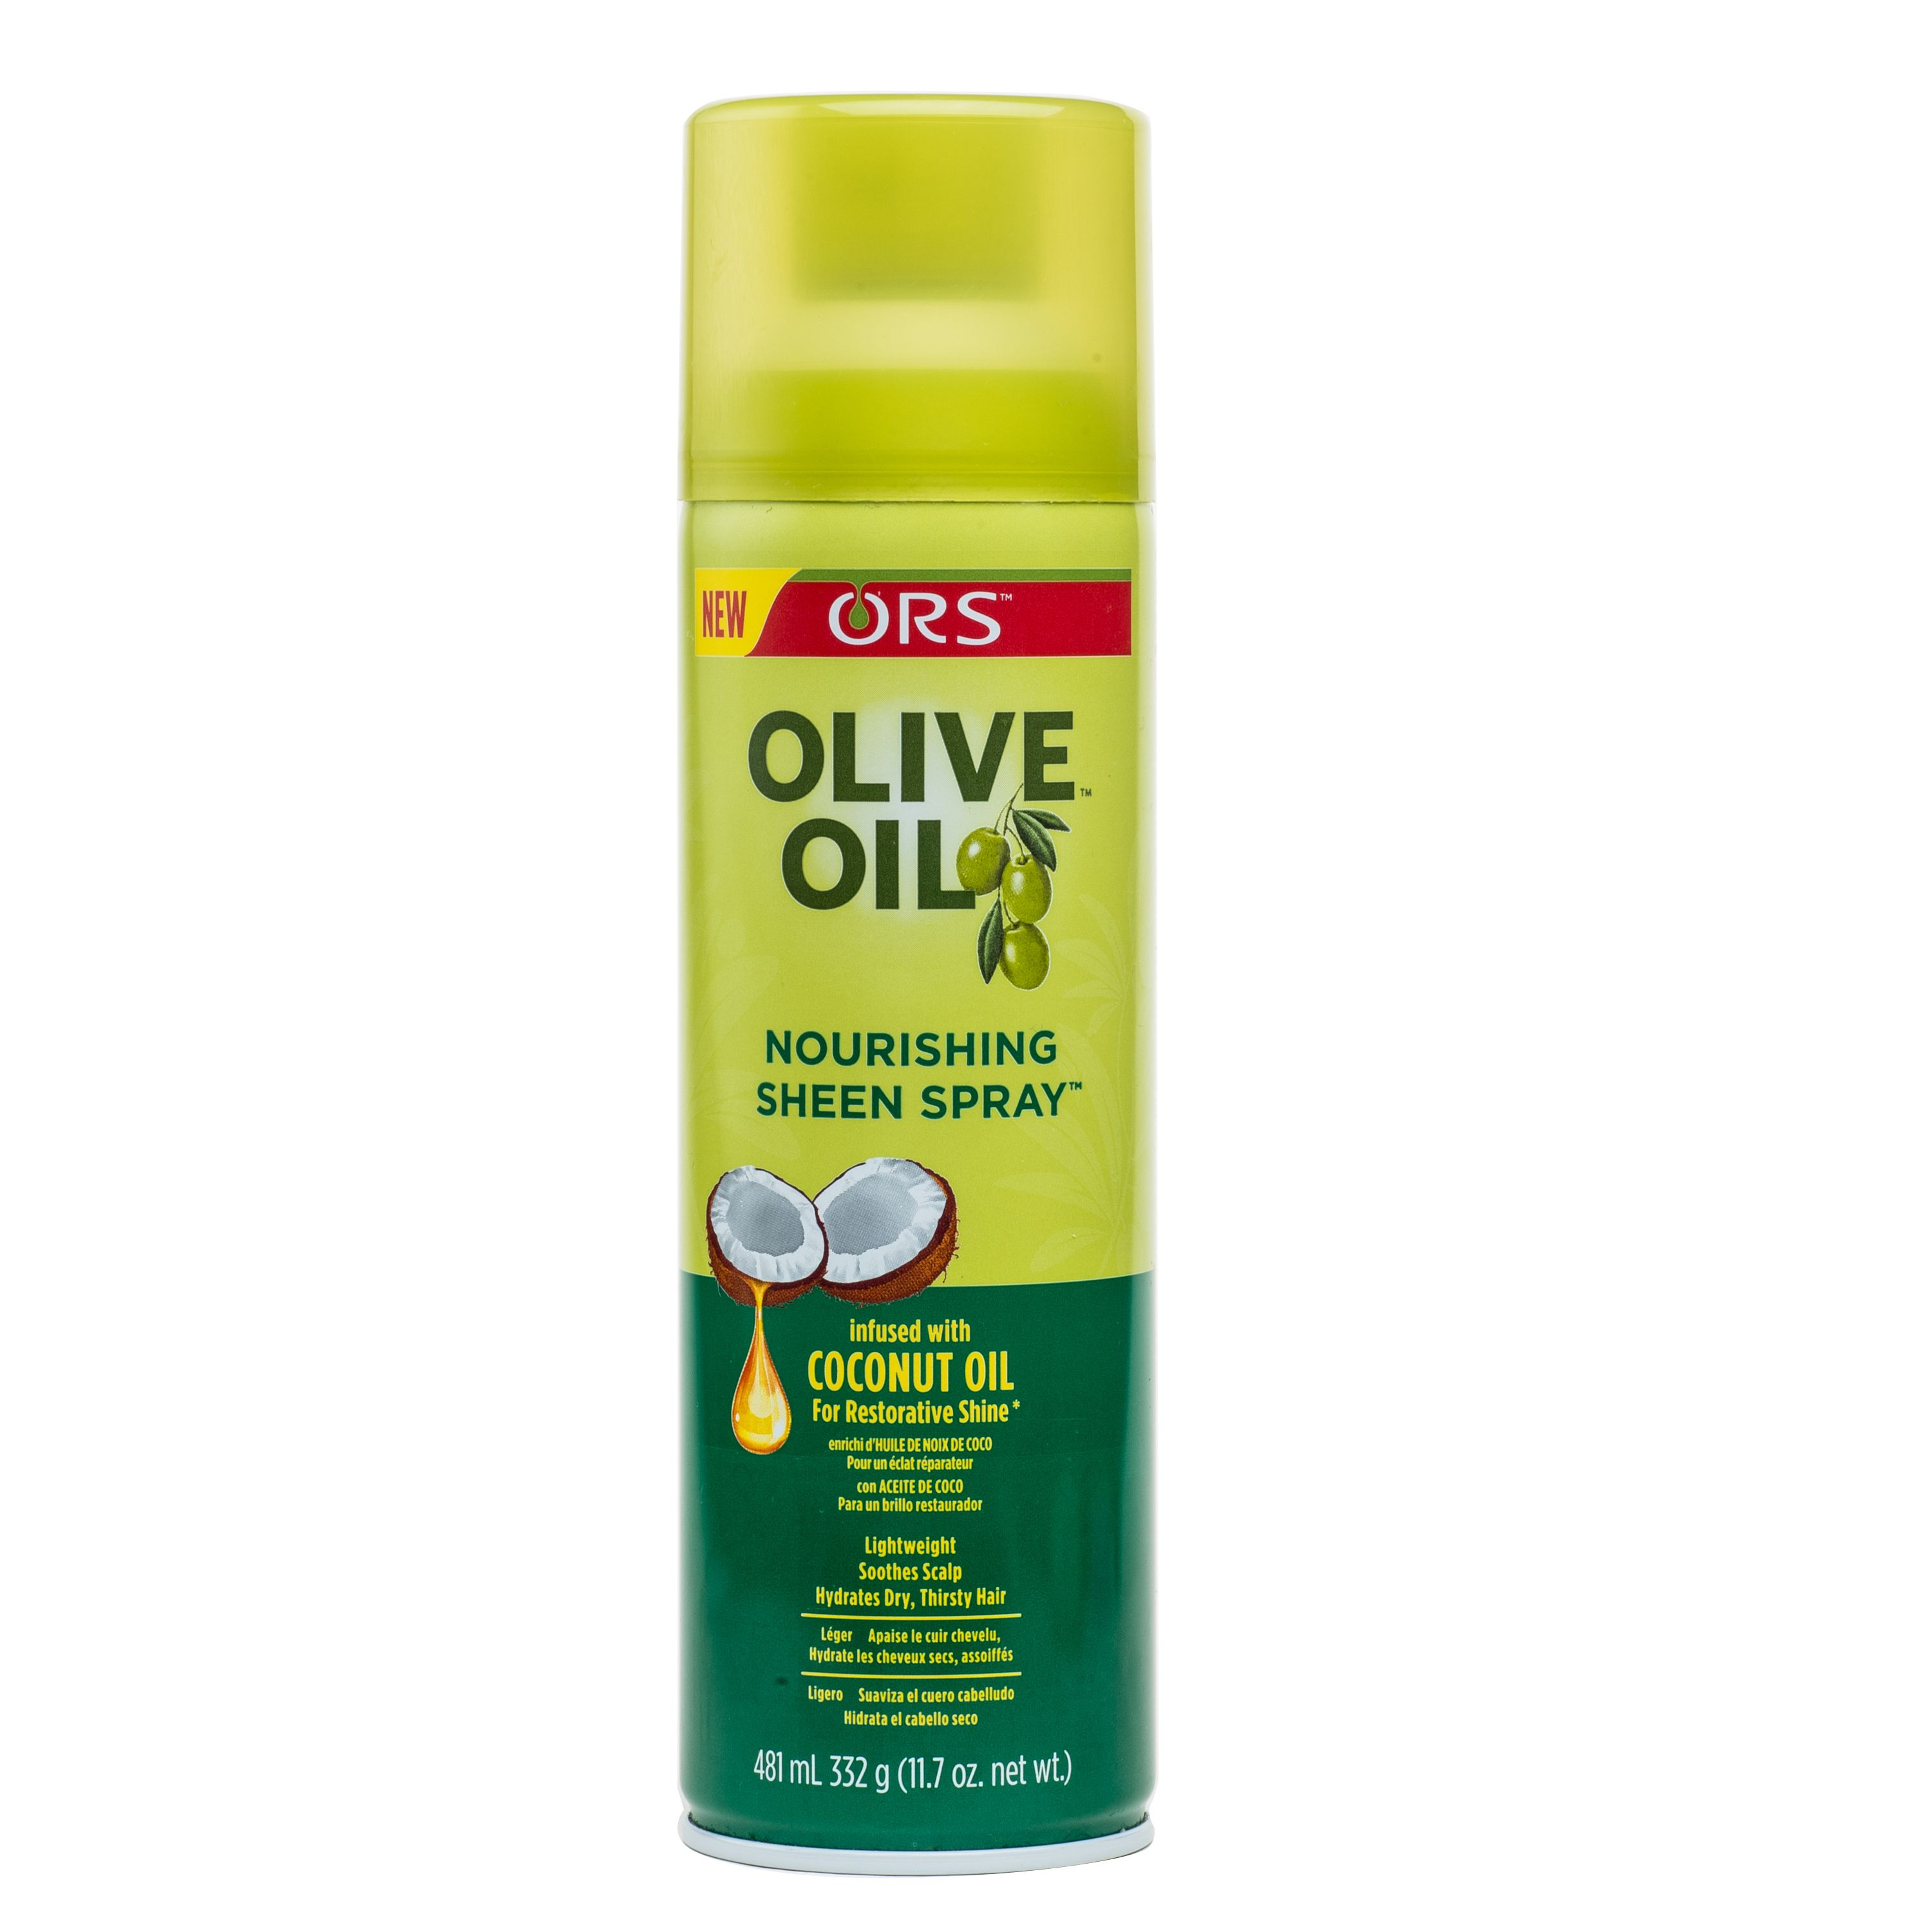 Ors Olive Oil Nourishing Sheen Spray 11 7 Oz Ad Oil Ad